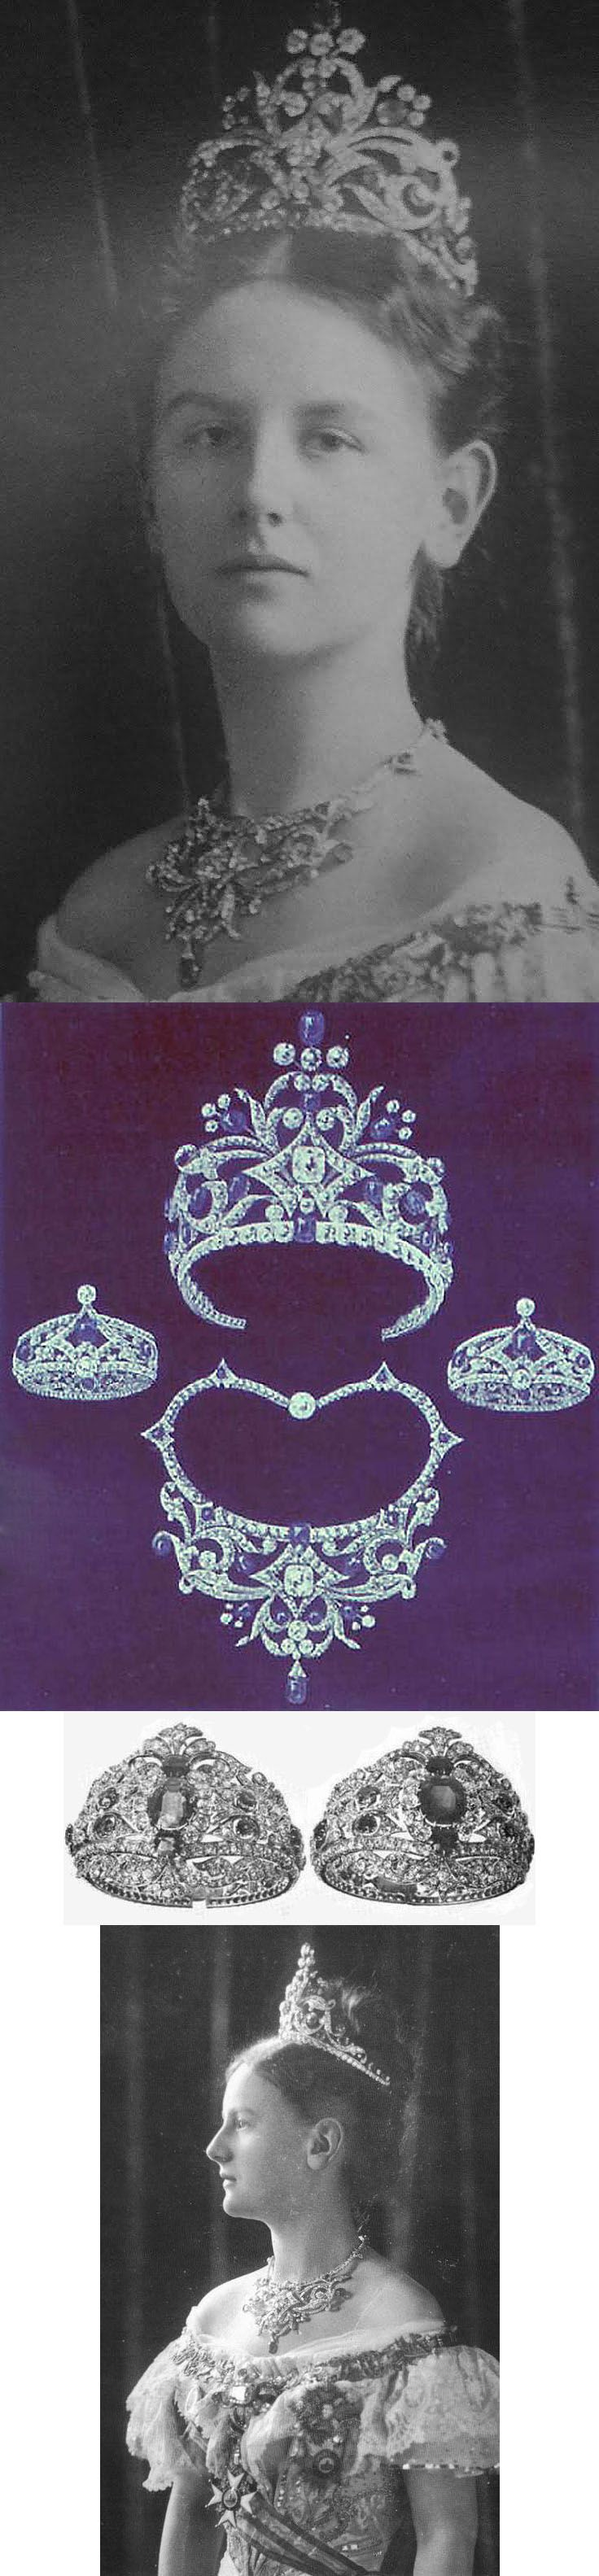 Queen Wilhelmina (1880-1962) wore a sapphire tiara which was given to her by the people of the Netherlands on occasion of her wedding to Prince Heinrich of Mecklenburg-Schwerin in 1901. The parure, designed by the firm Vila Israel and make by Hoeting from more than 800 pieces, was included a very large Indian diamond for the centre.